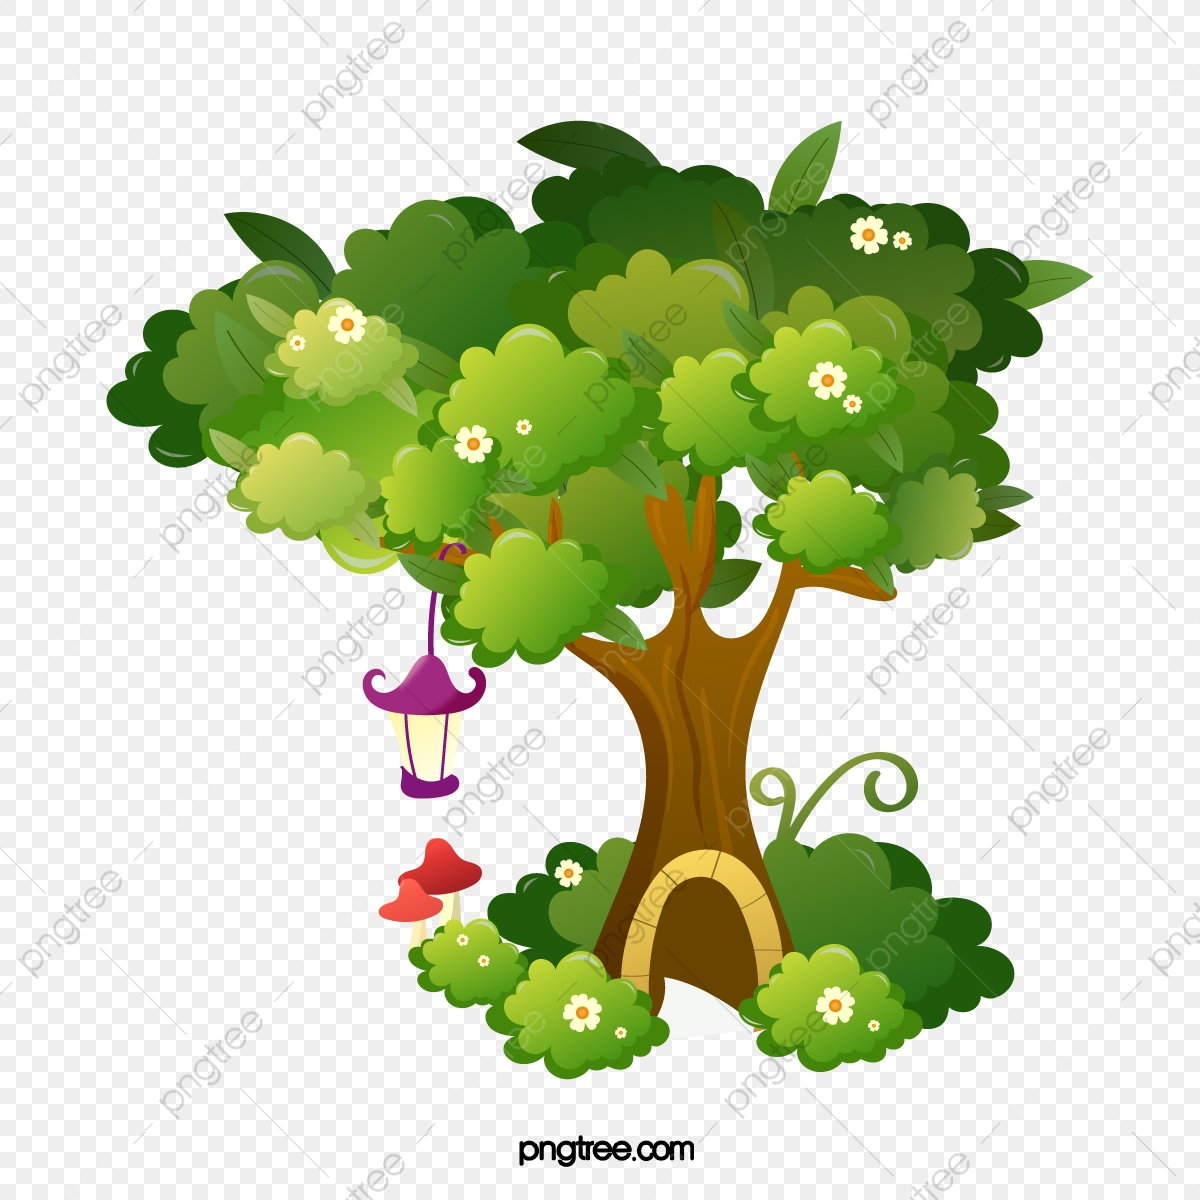 Cartoon Tree Cartoon Clipart Tree Clipart Cartoon Png And Vector With Transparent Background For Free Download Tree png you can download 33 free tree png images. https pngtree com freepng cartoon tree 230886 html